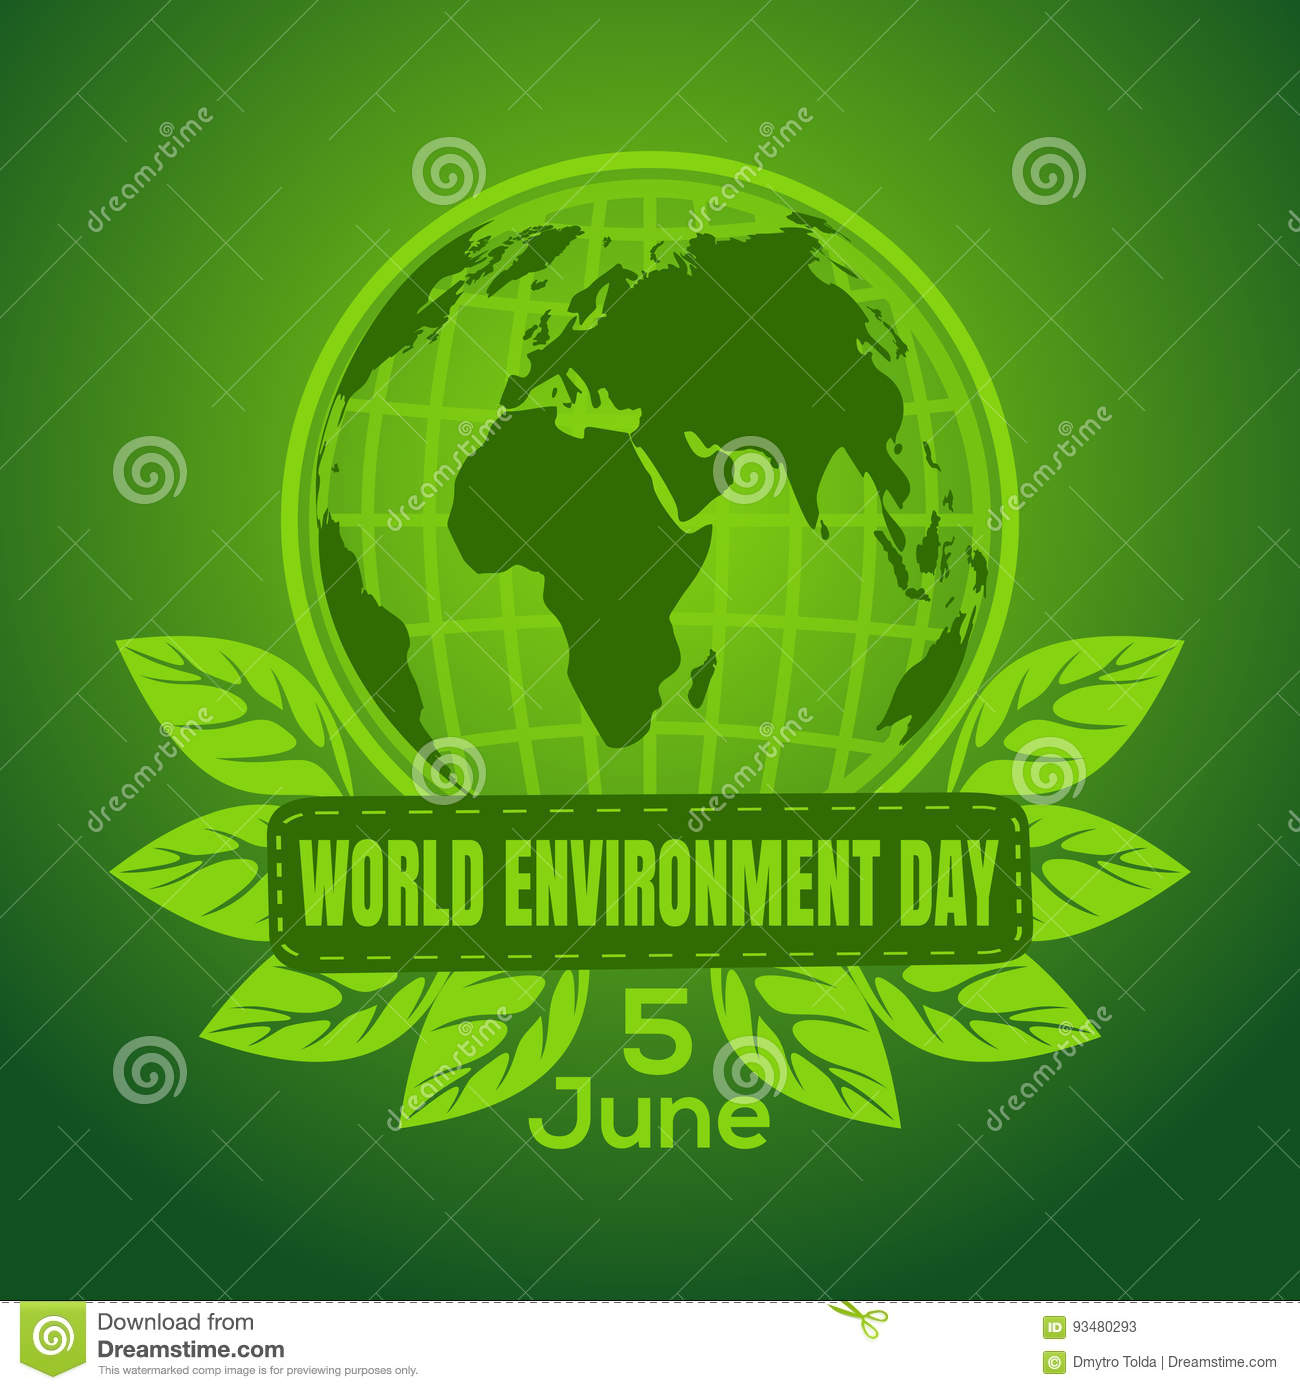 Poster design environment day - World Environment Day Poster Design